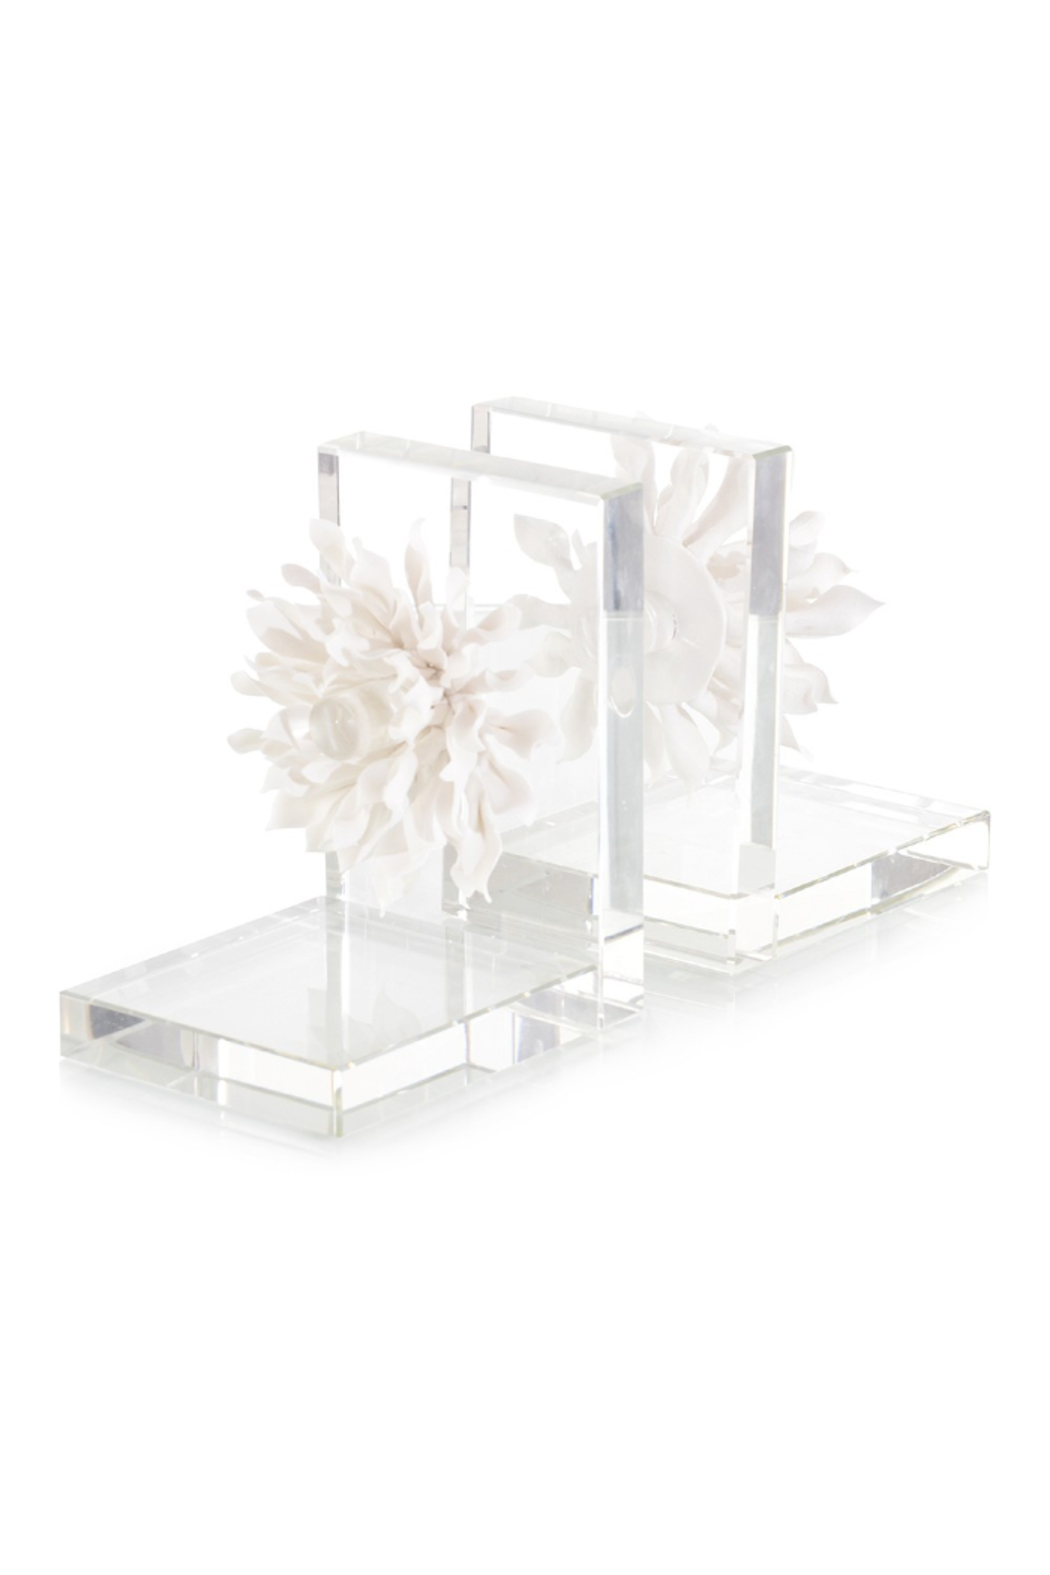 The Birds Nest S/2 PORCELAIN PETALS & CRYSTAL BOOKENDS - Main Image